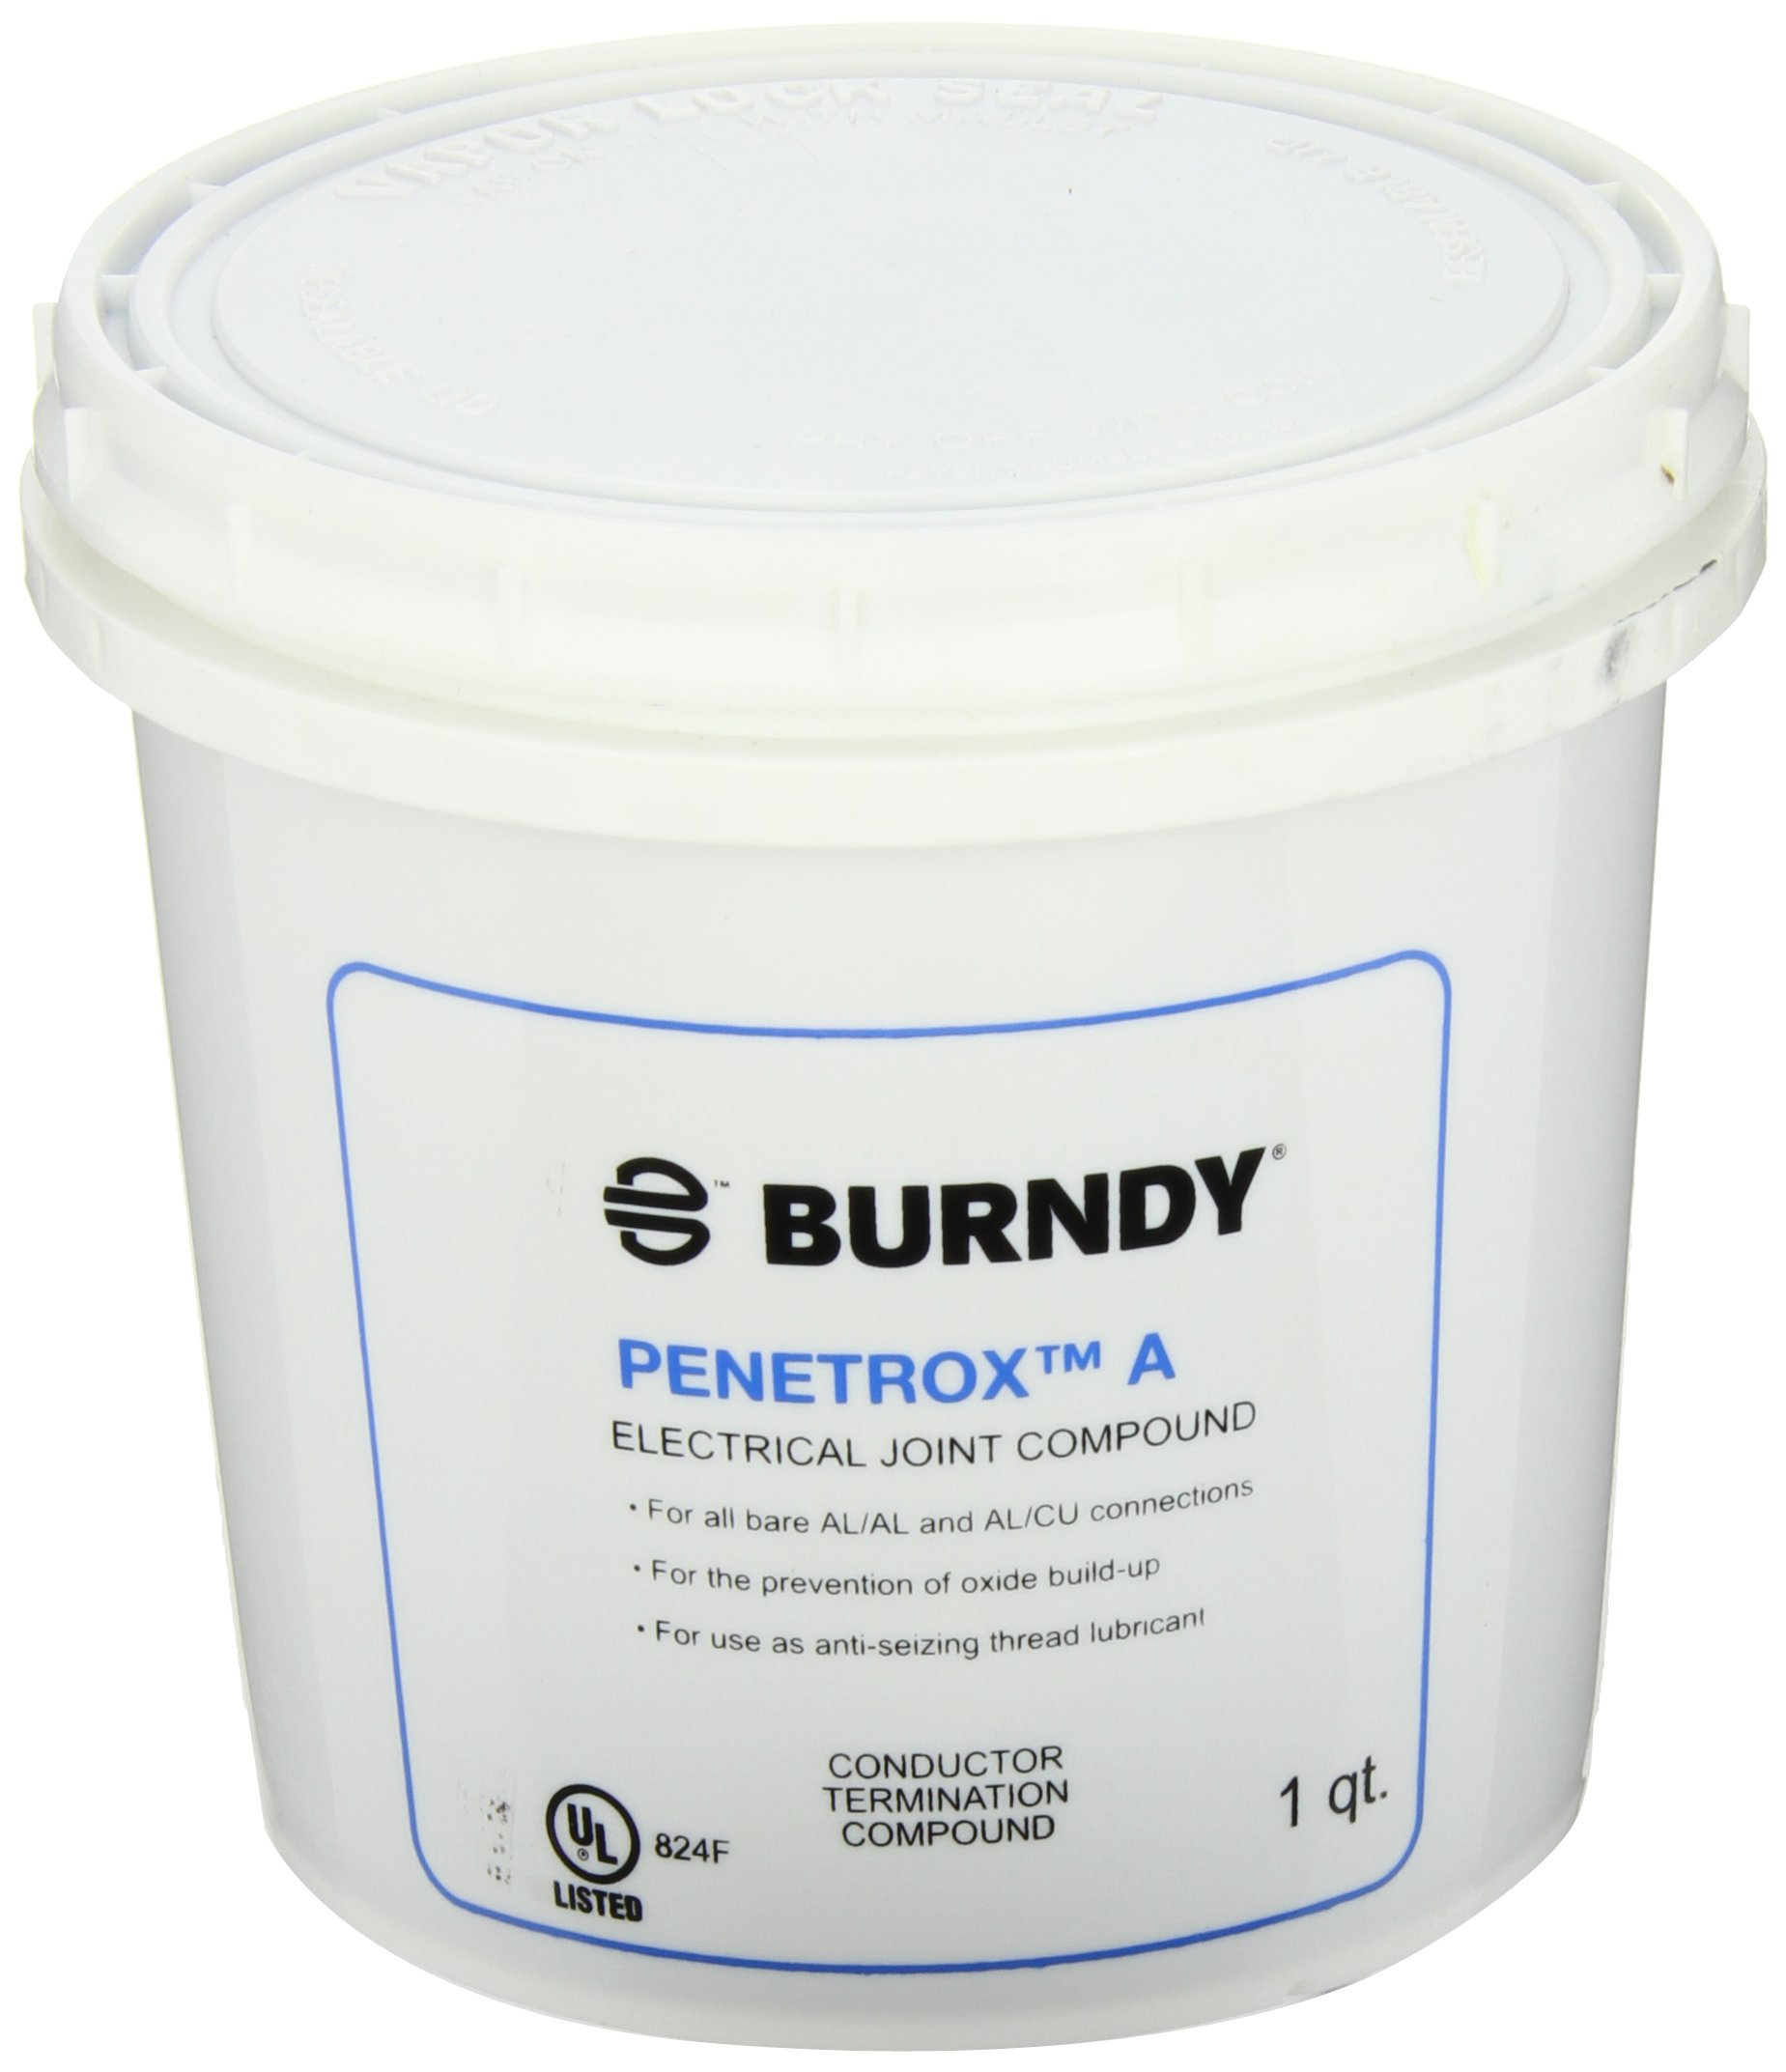 Burndy PEN A-QT Oxide-Inhibiting Joint Compounds PENETROX A, 1qt Container Size, Plastic Tub Container Type